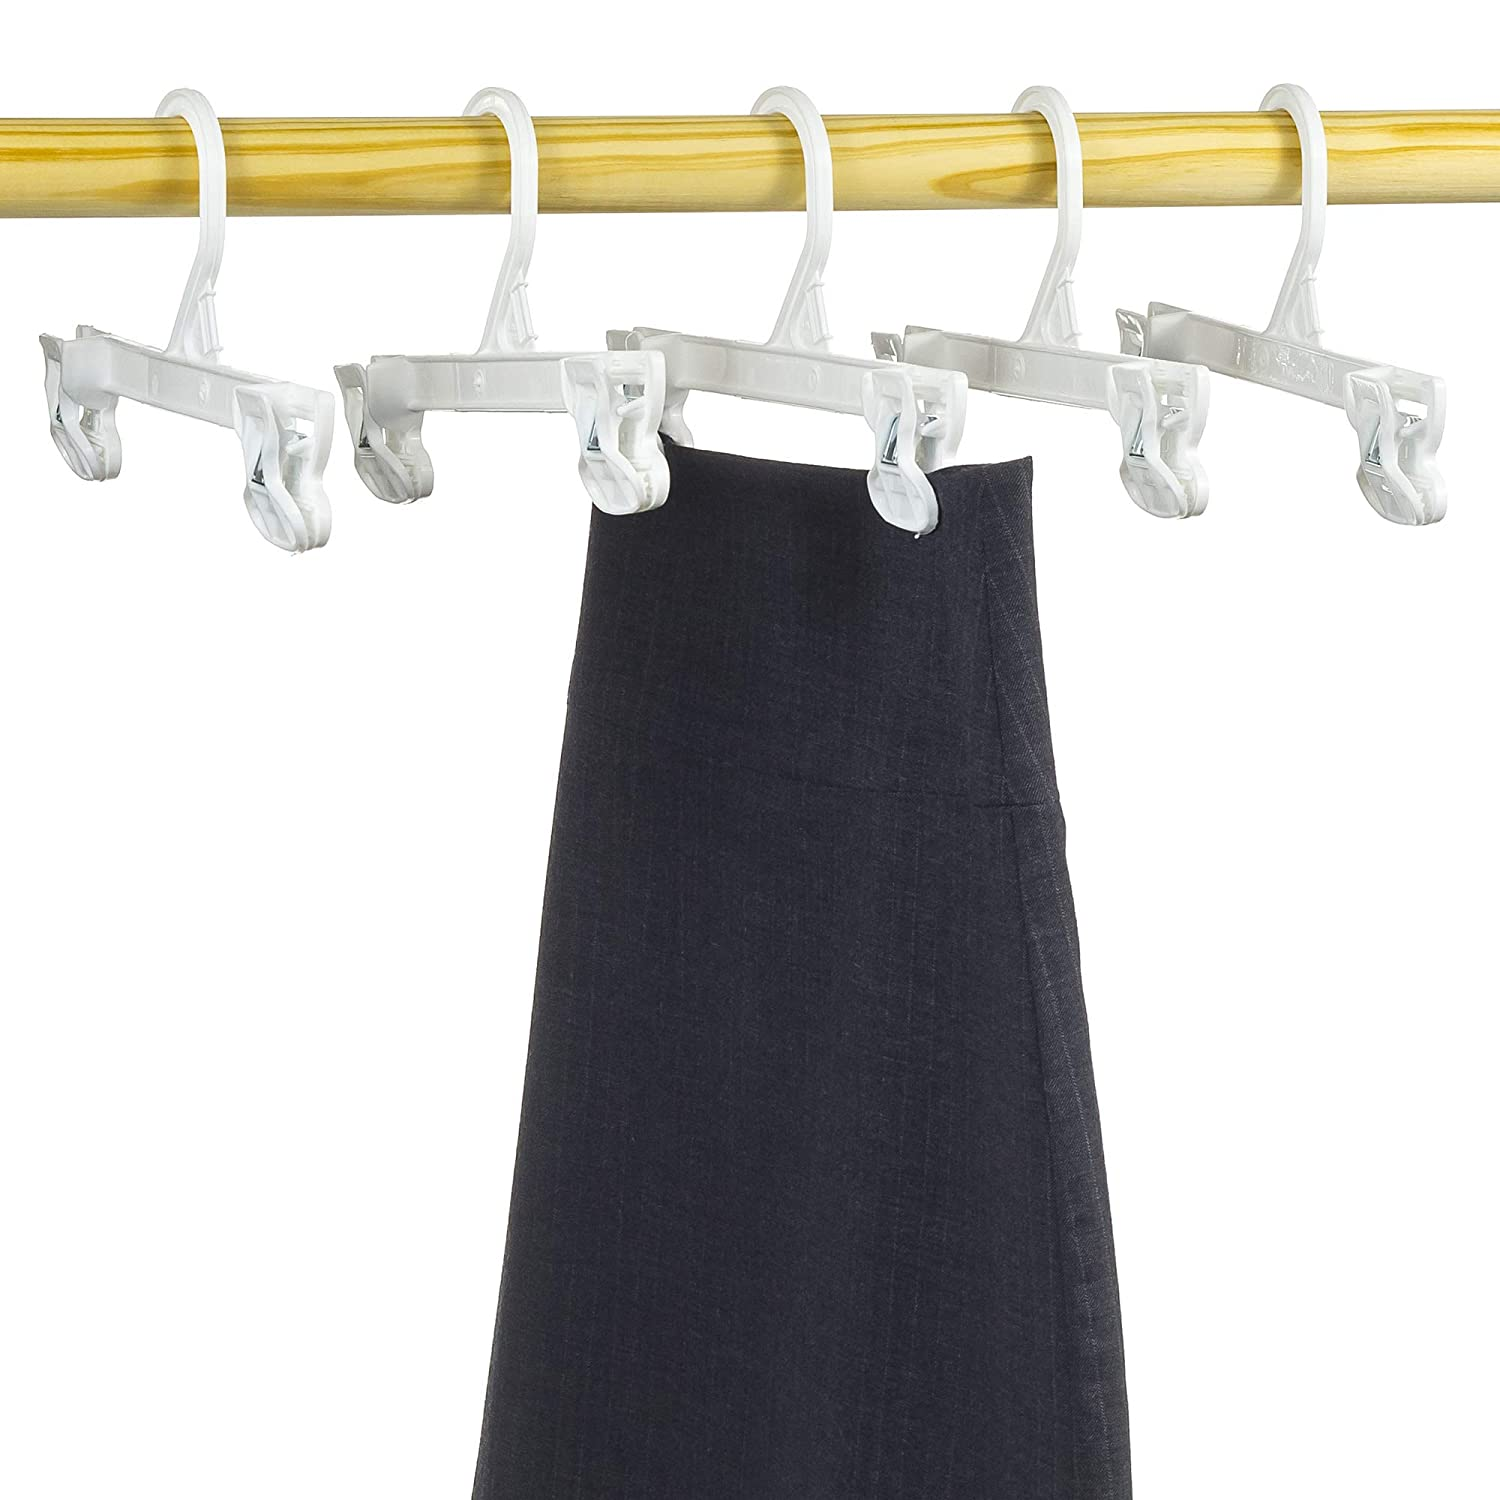 Pack of 10 8 Inch Mainetti 1004 White All Plastic Hangers with Sturdy Plastic Non-Slip Clips Great for Pants//Skirts//Slacks//Bottoms